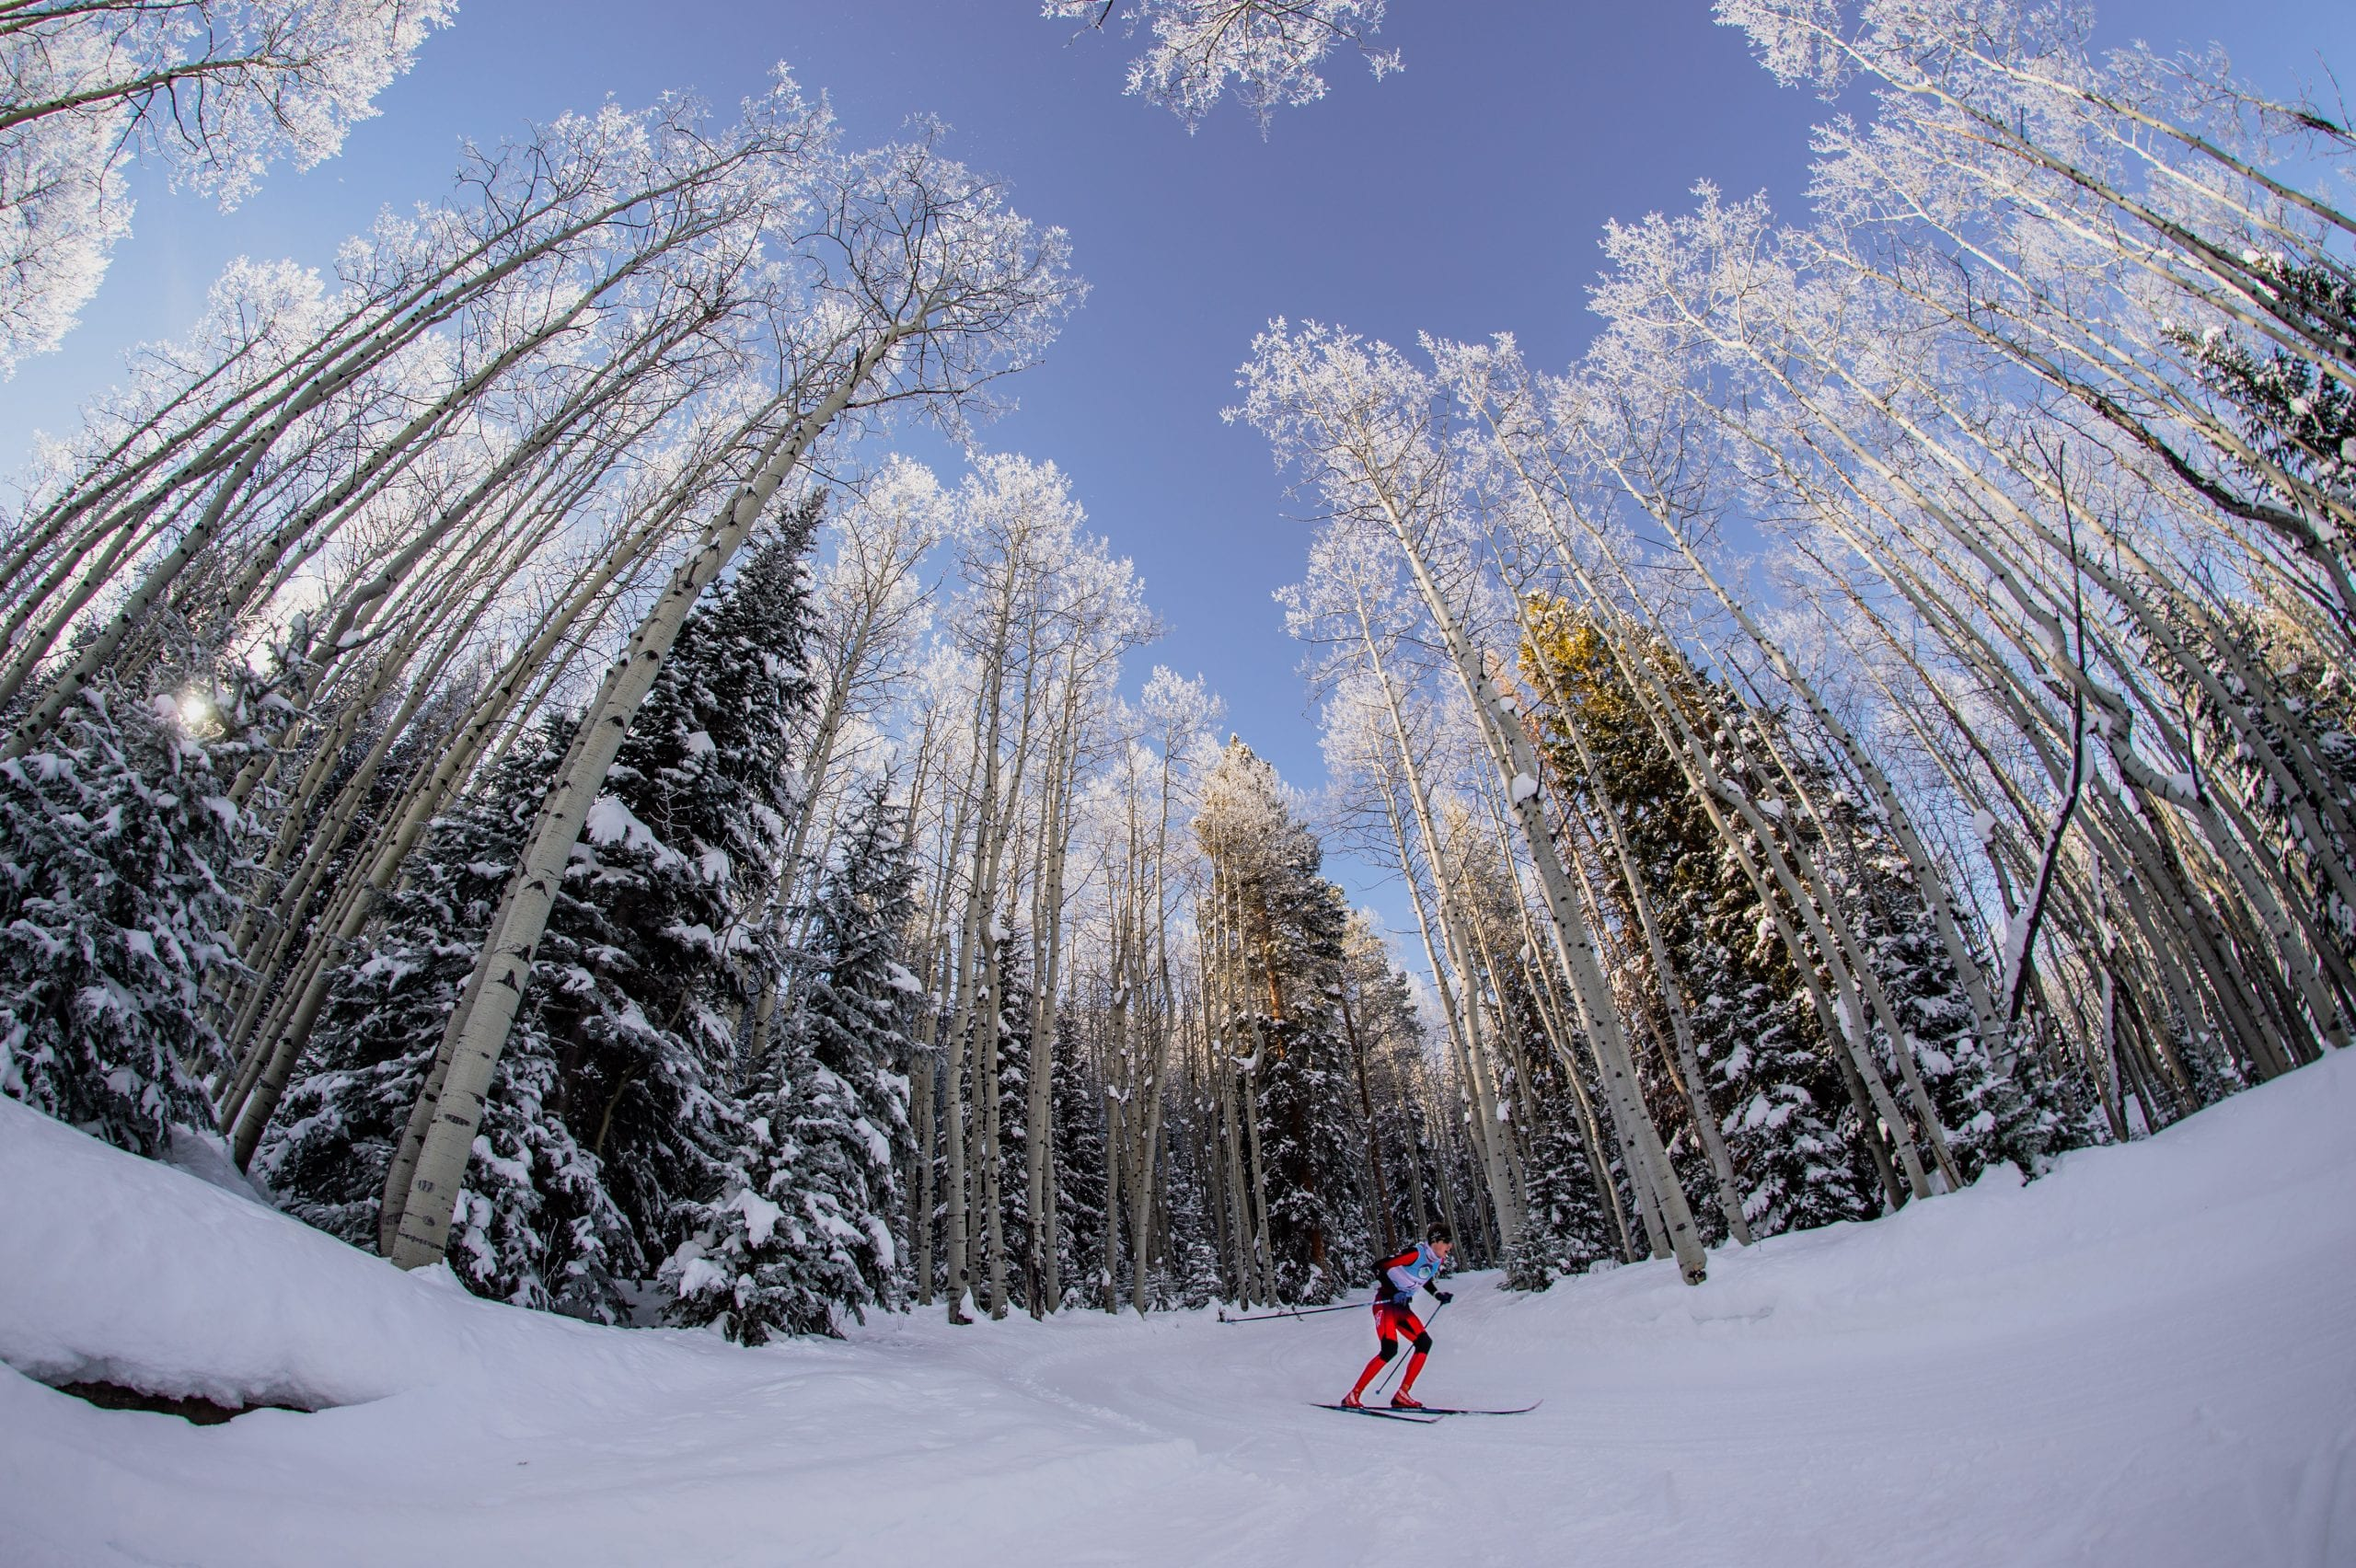 Racer navigating a downhill section on a Crested Butte Nordic race course